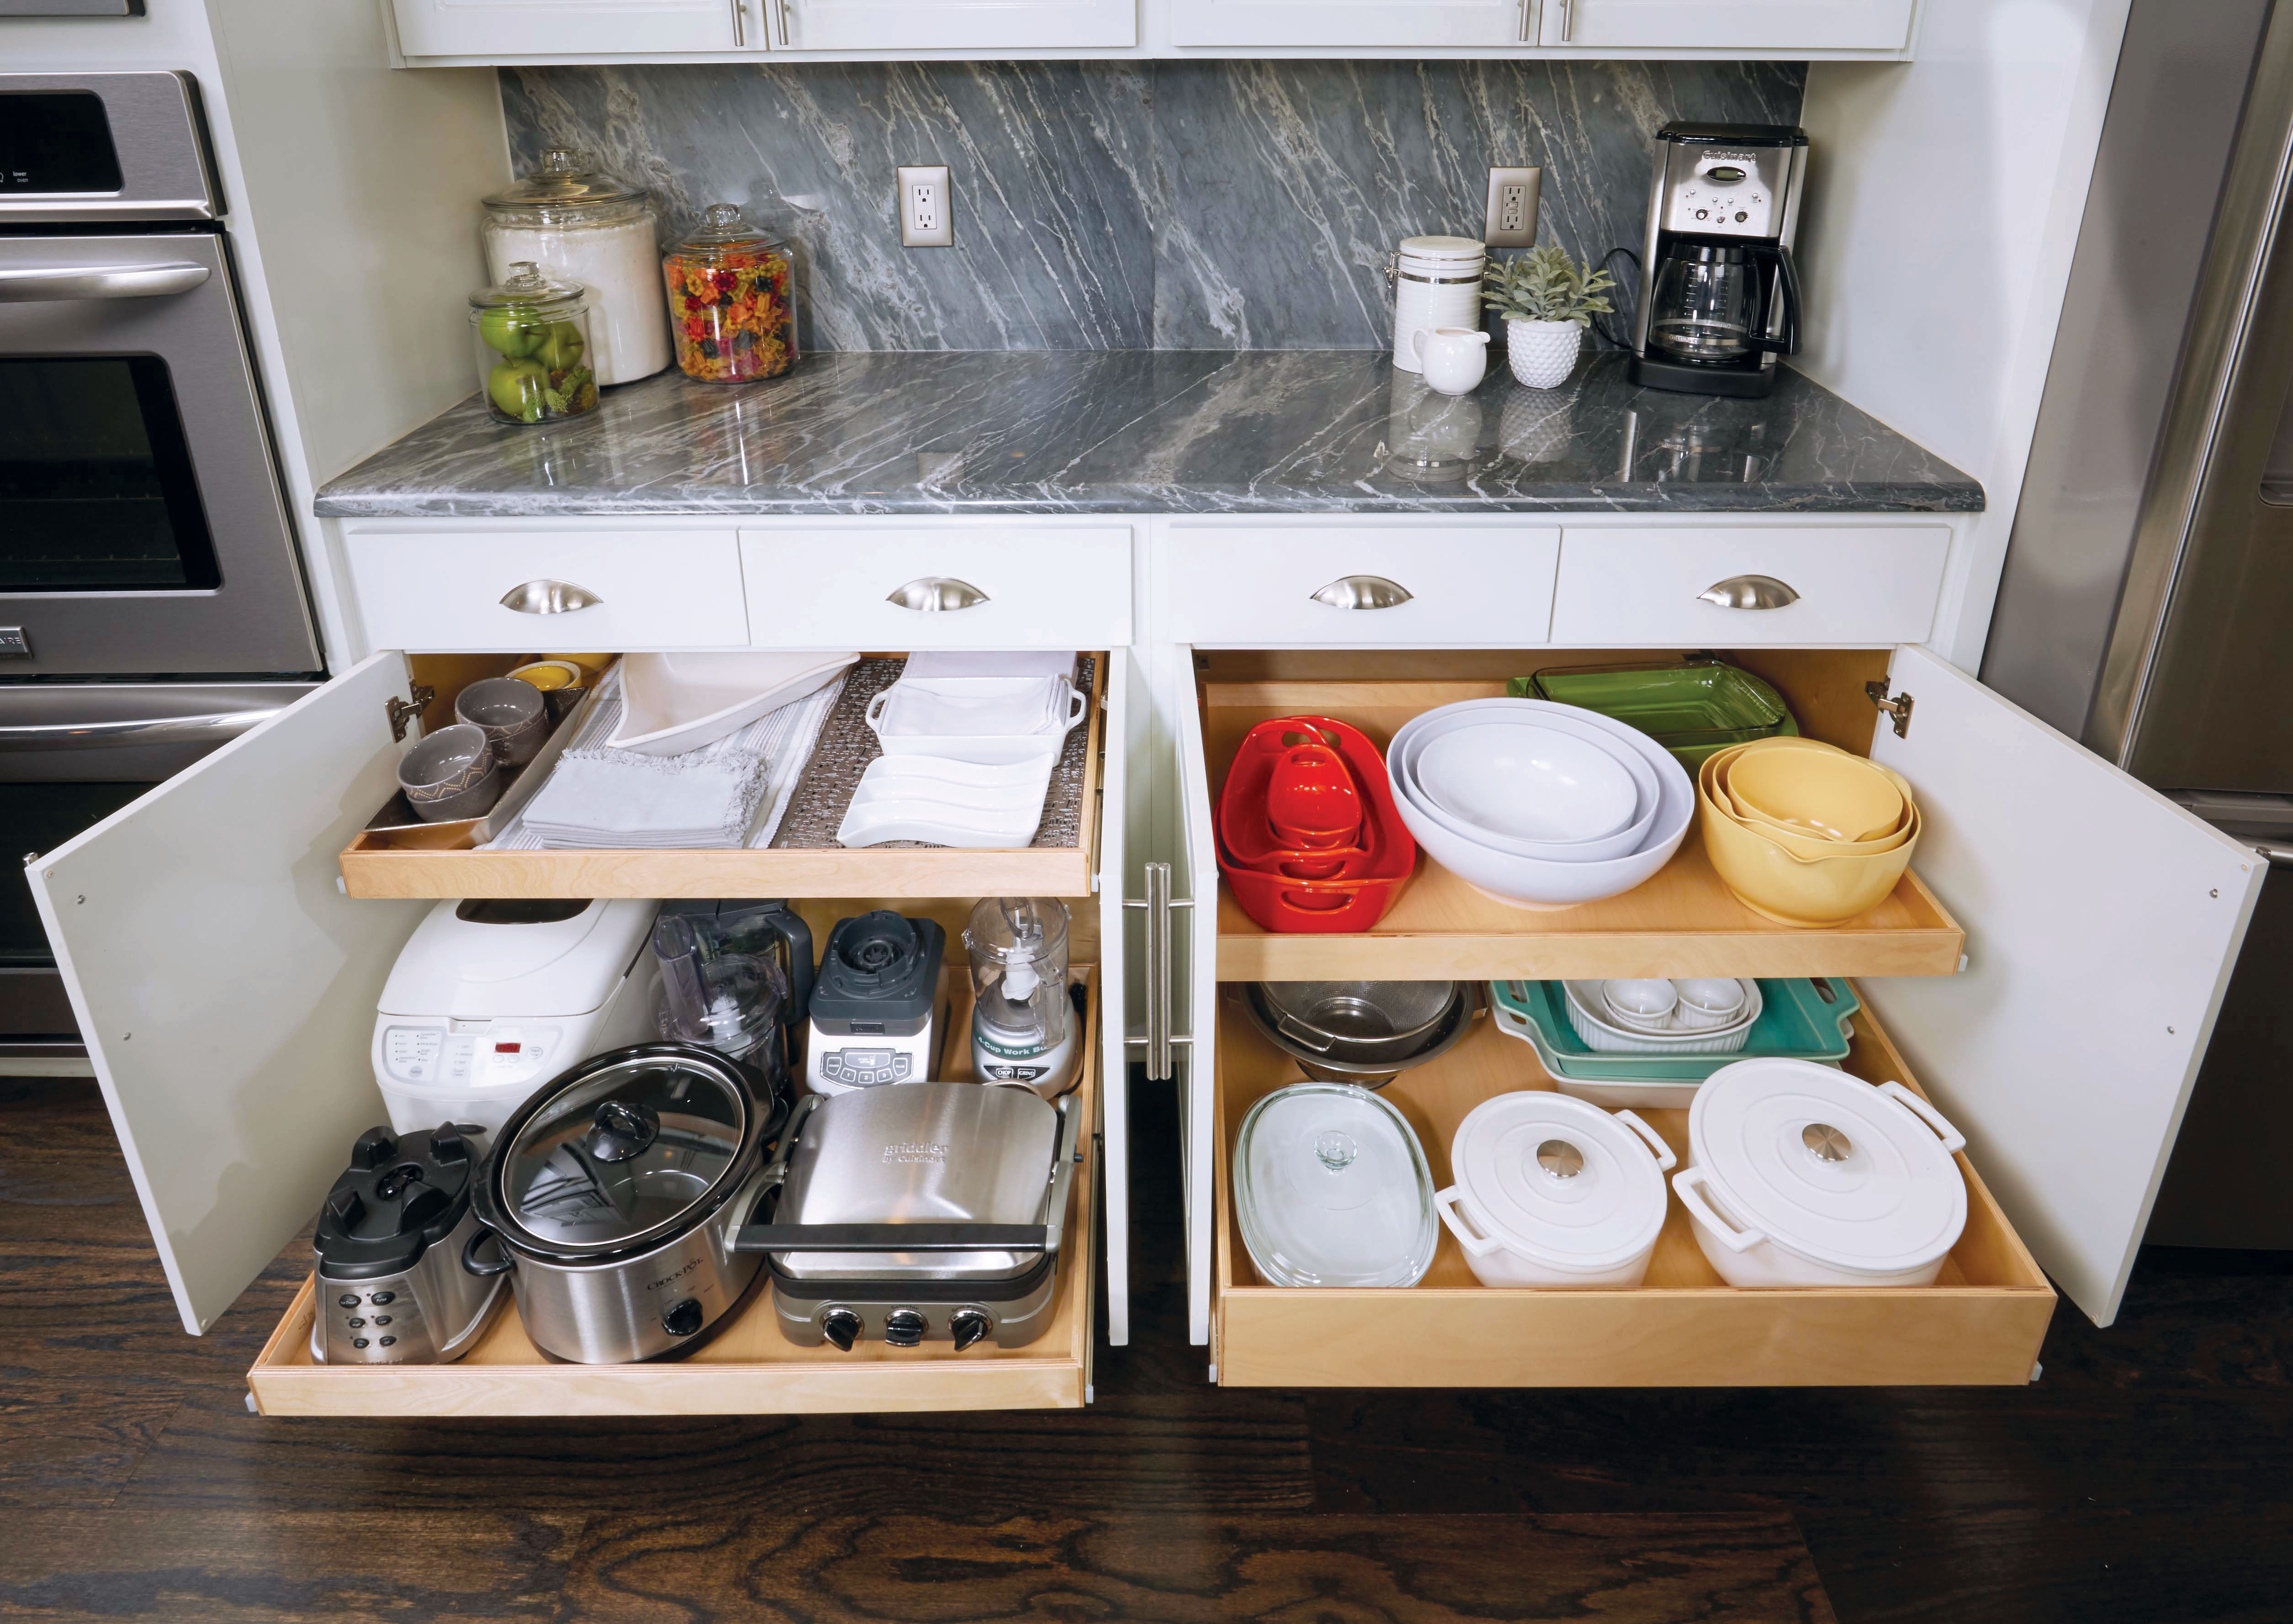 Did You Know That Shelfgenie S Shelves Can Hold Up To 100 Lbs Of Weight Each Perfect For Heavy Kitch Kitchen Solutions Pull Out Shelves Redo Kitchen Cabinets